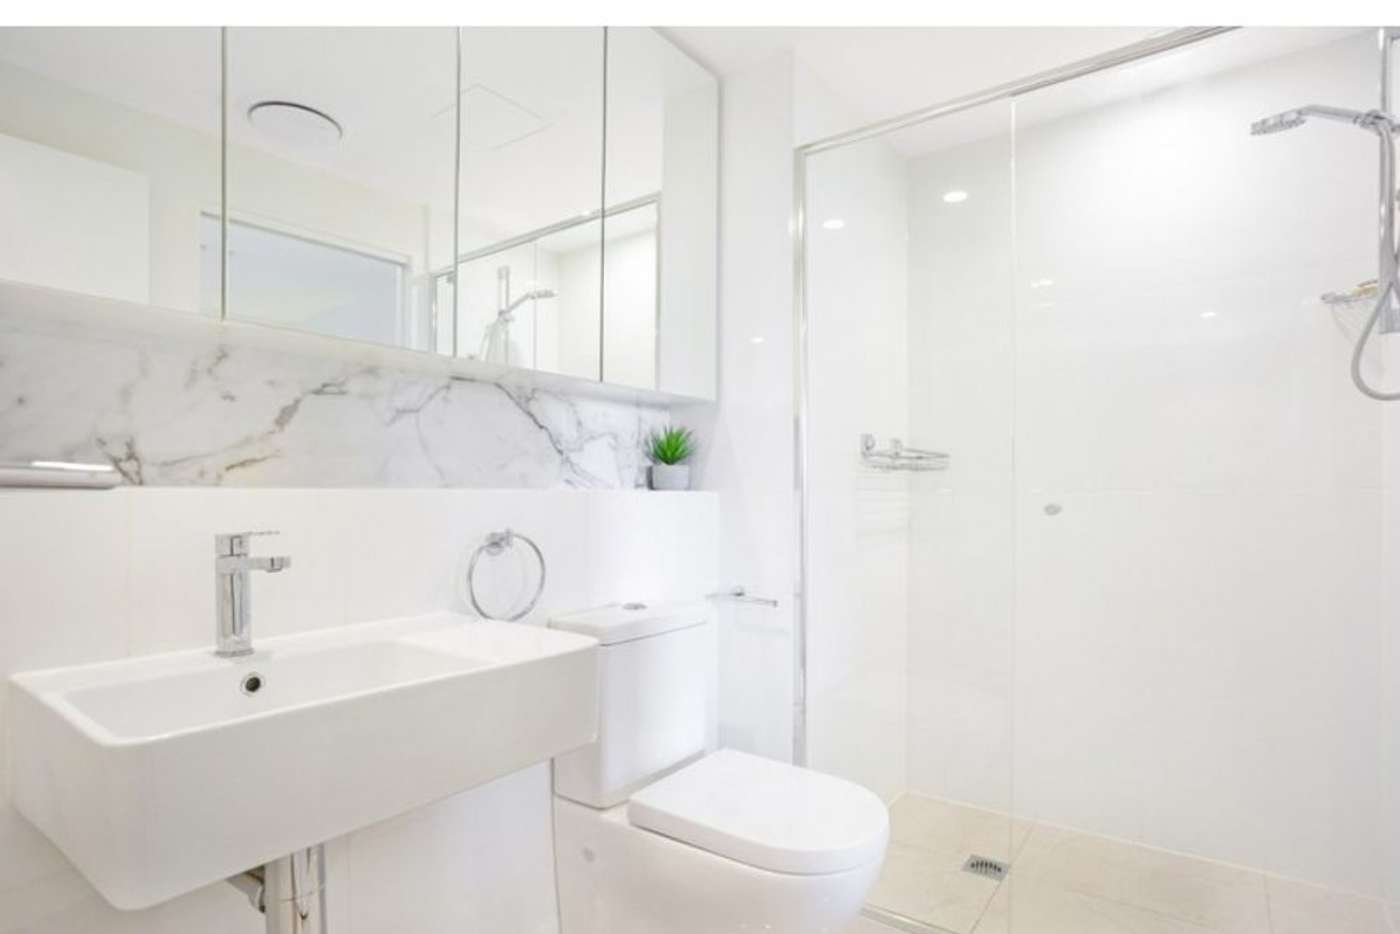 Sixth view of Homely apartment listing, 807/139 Scarborough Street, Southport QLD 4215